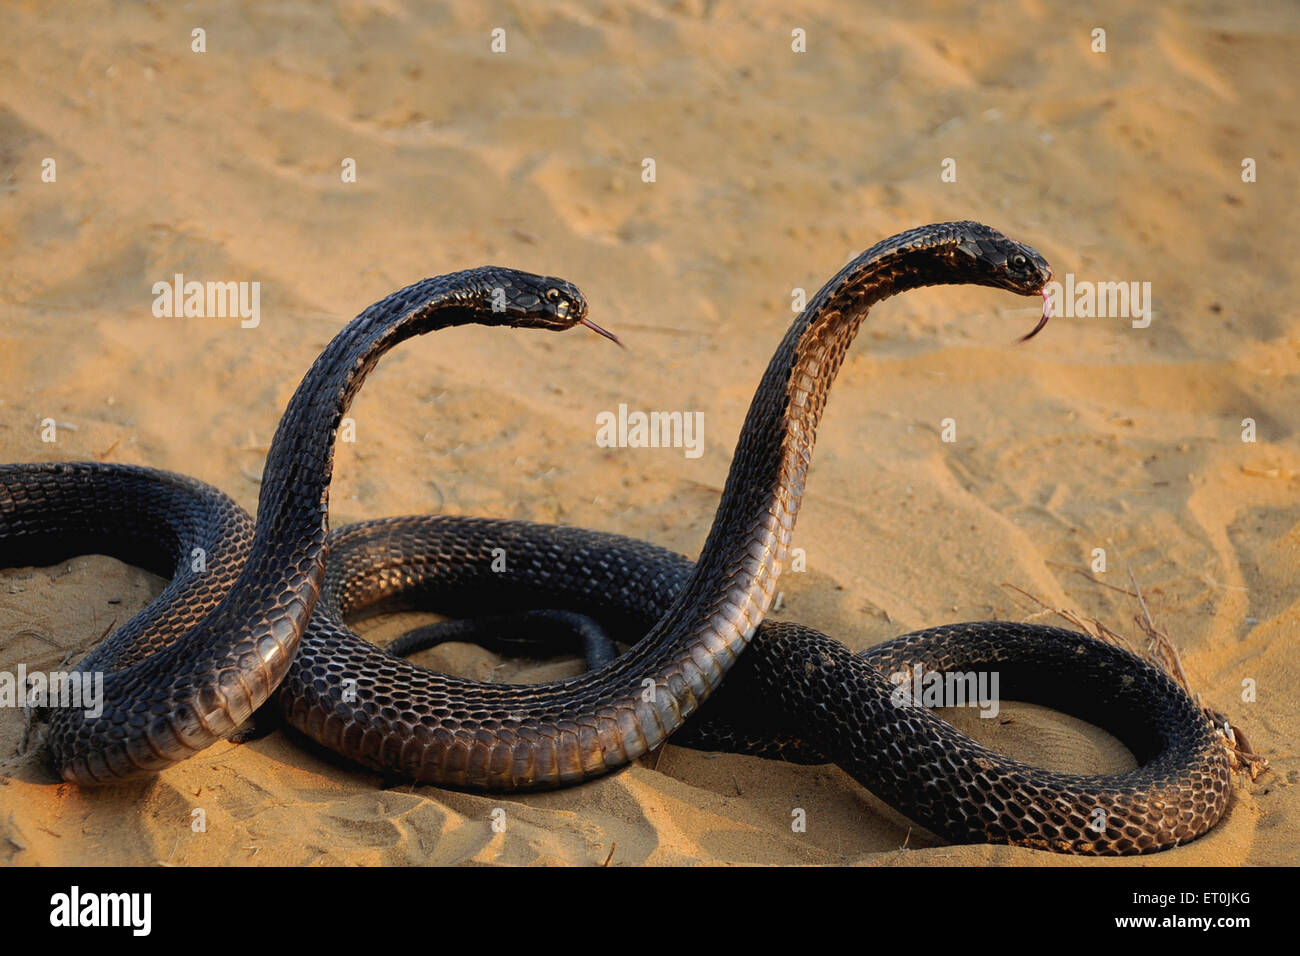 Reptiles ; pair of cobra snakes in aggressive position ; Pushkar fair ; Rajasthan ; India - Stock Image